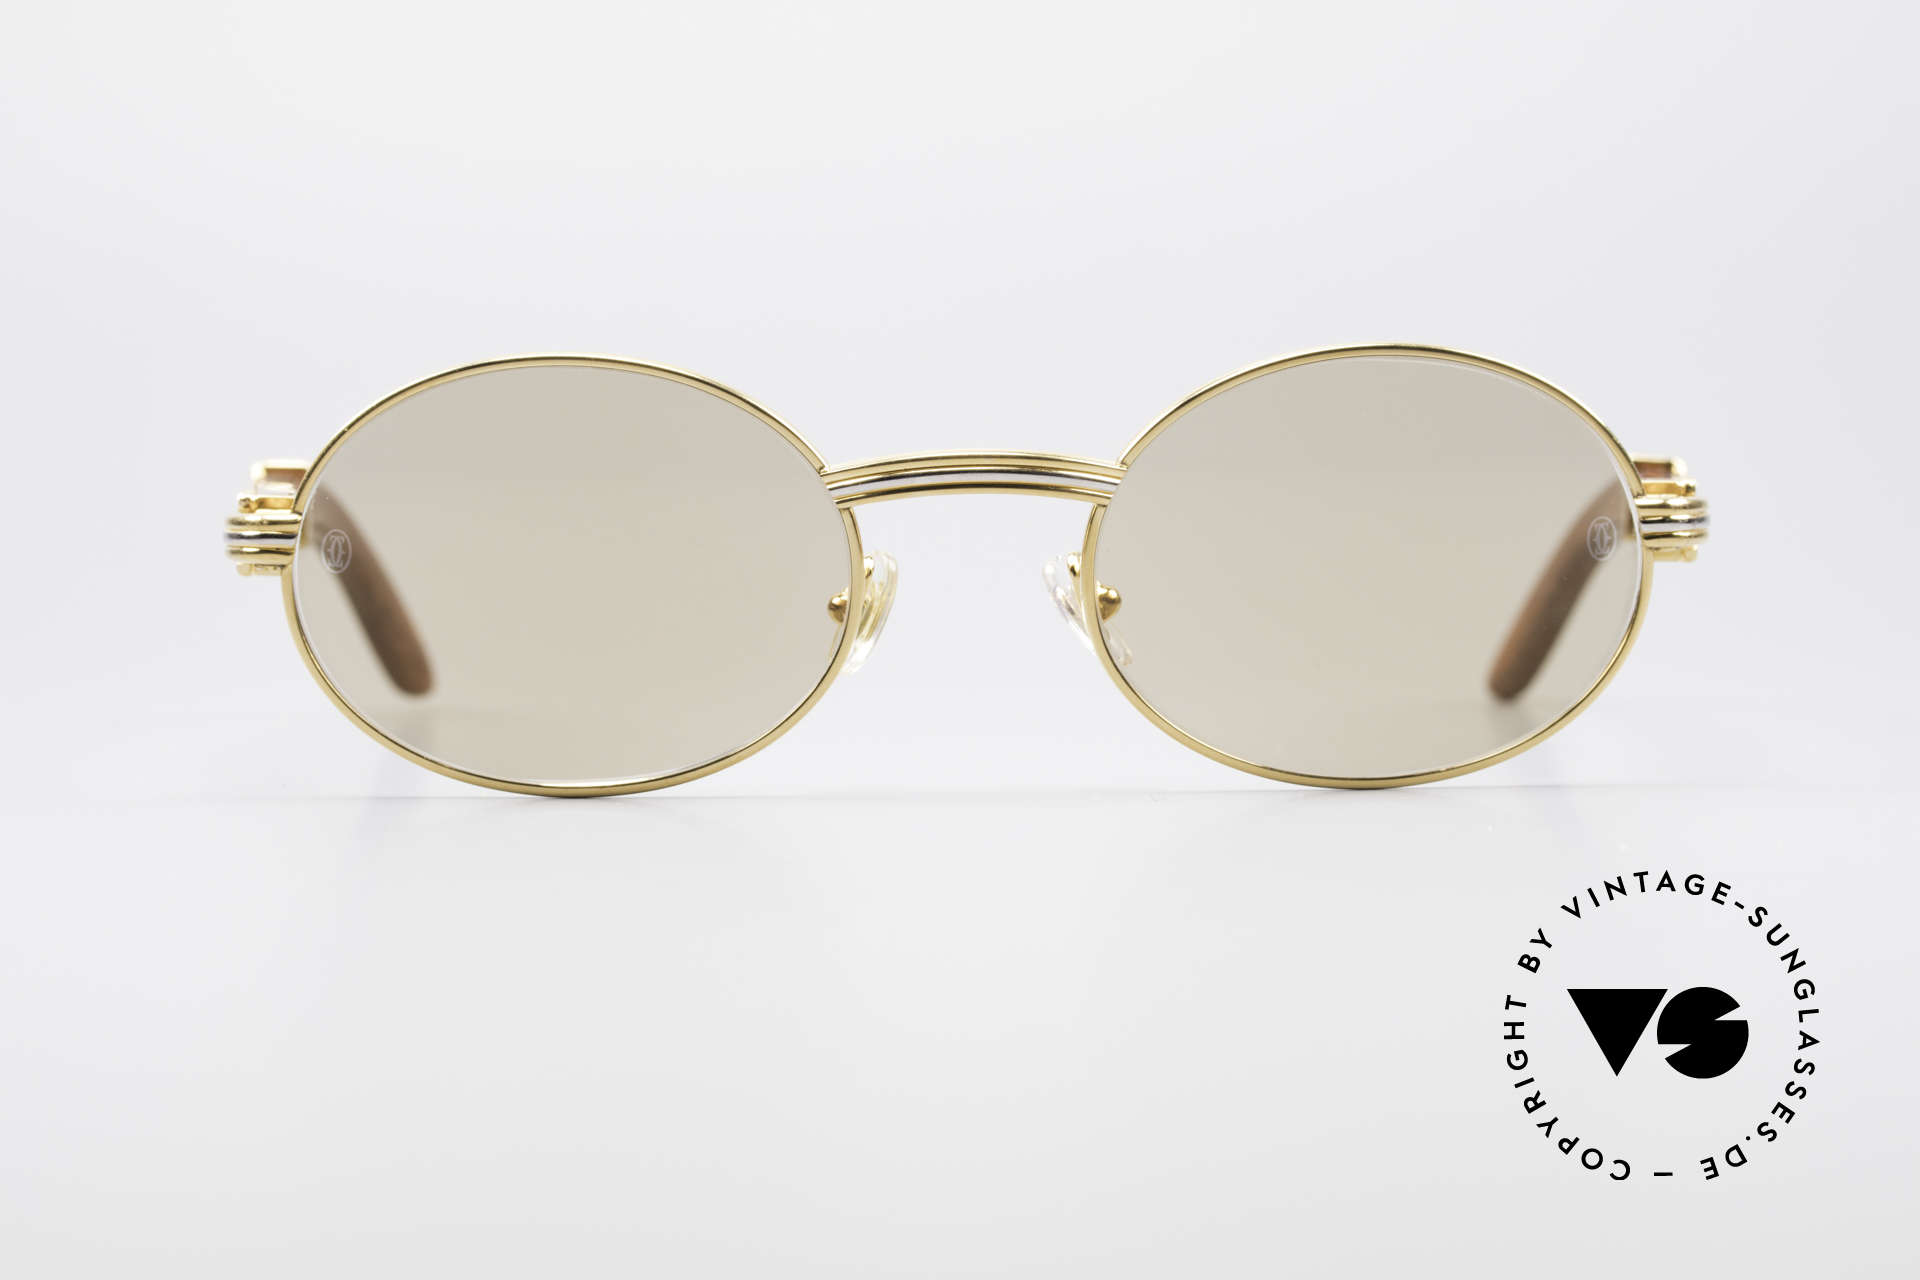 f249cf8355c5 Sunglasses Cartier Giverny Oval Wood Sunglasses